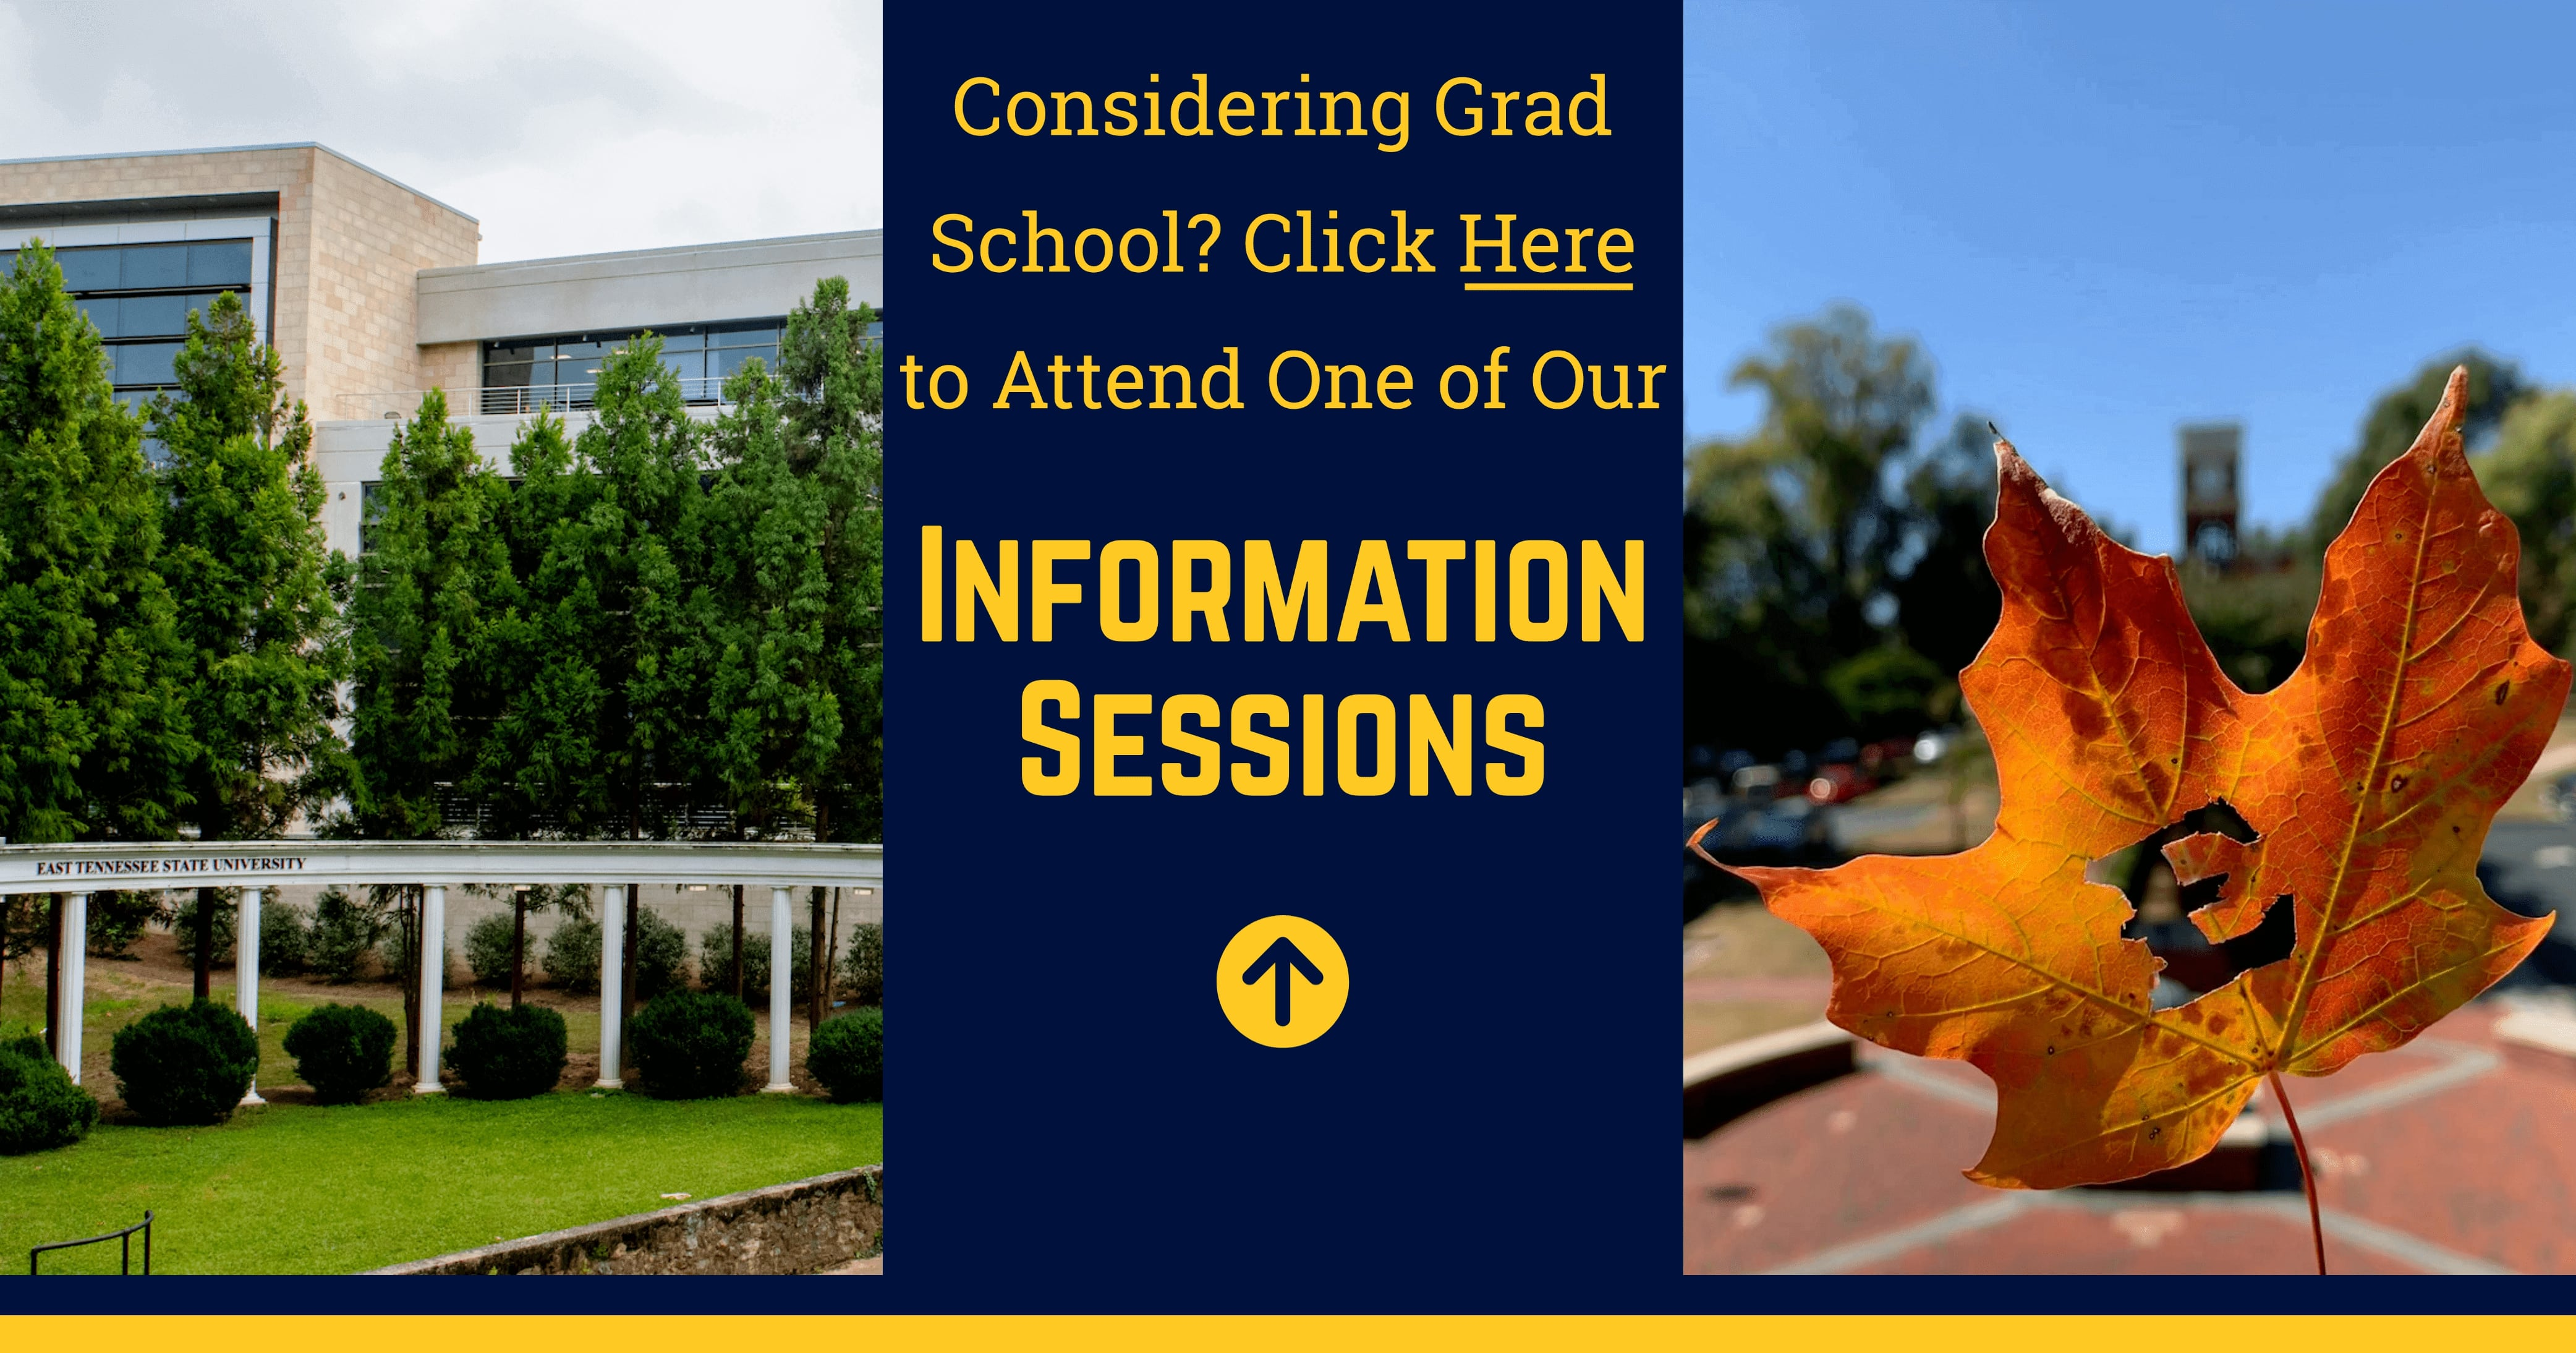 Considering Grad School? Click Here to attend one of our information sessions!